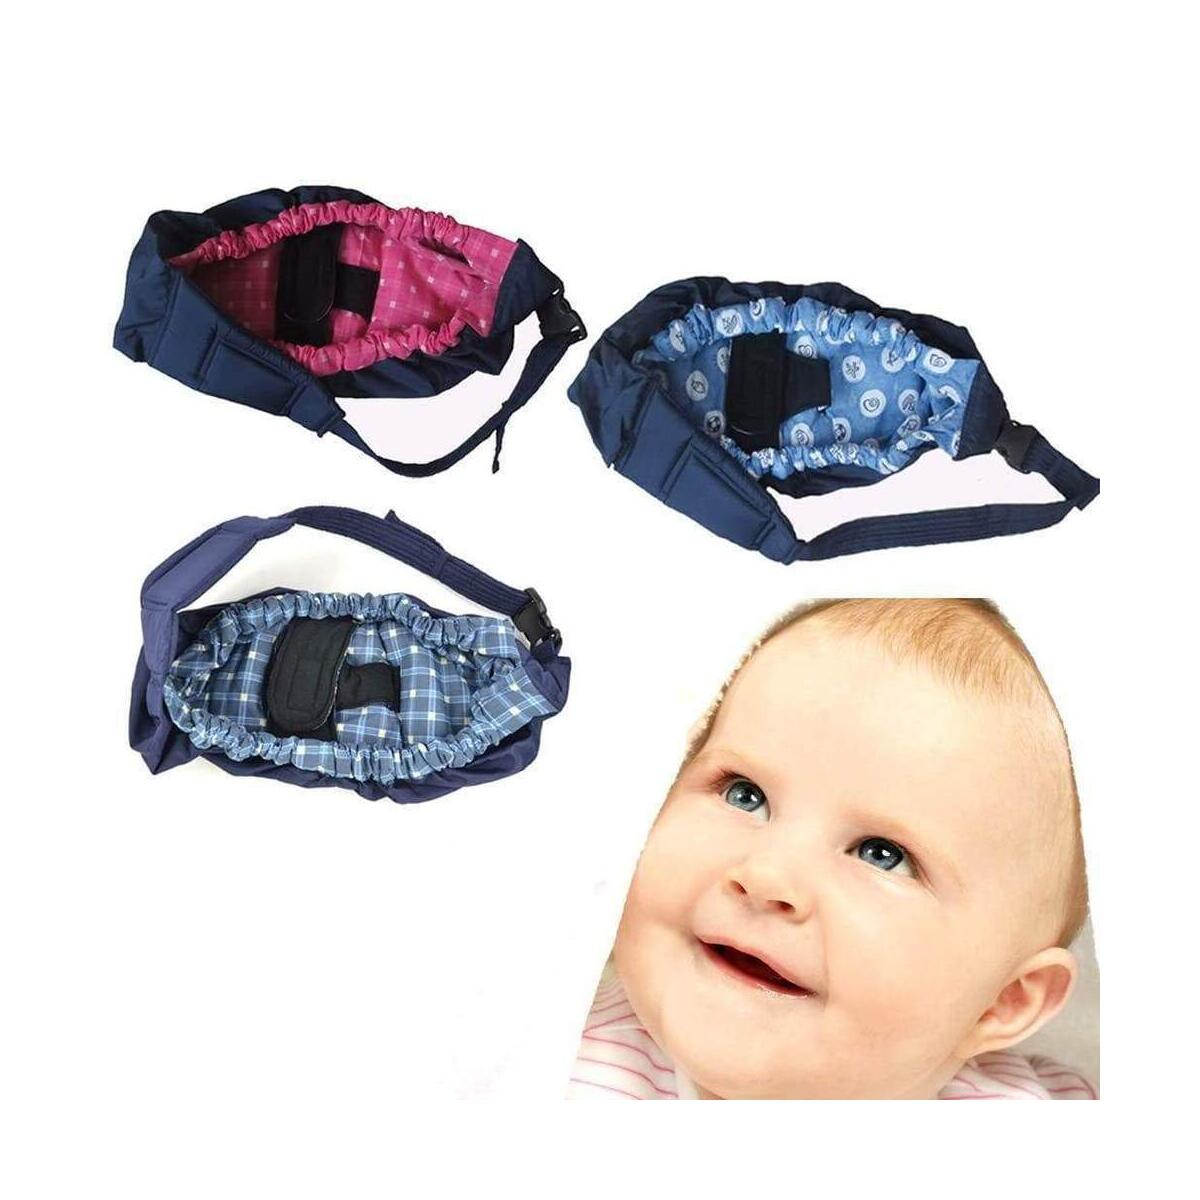 Baby Carrier, Baby Carrier Adjustable Sling Wrap Carrying Breathable Baby Sling Wrap Rider Backpack Pouch Front Nursing Cover